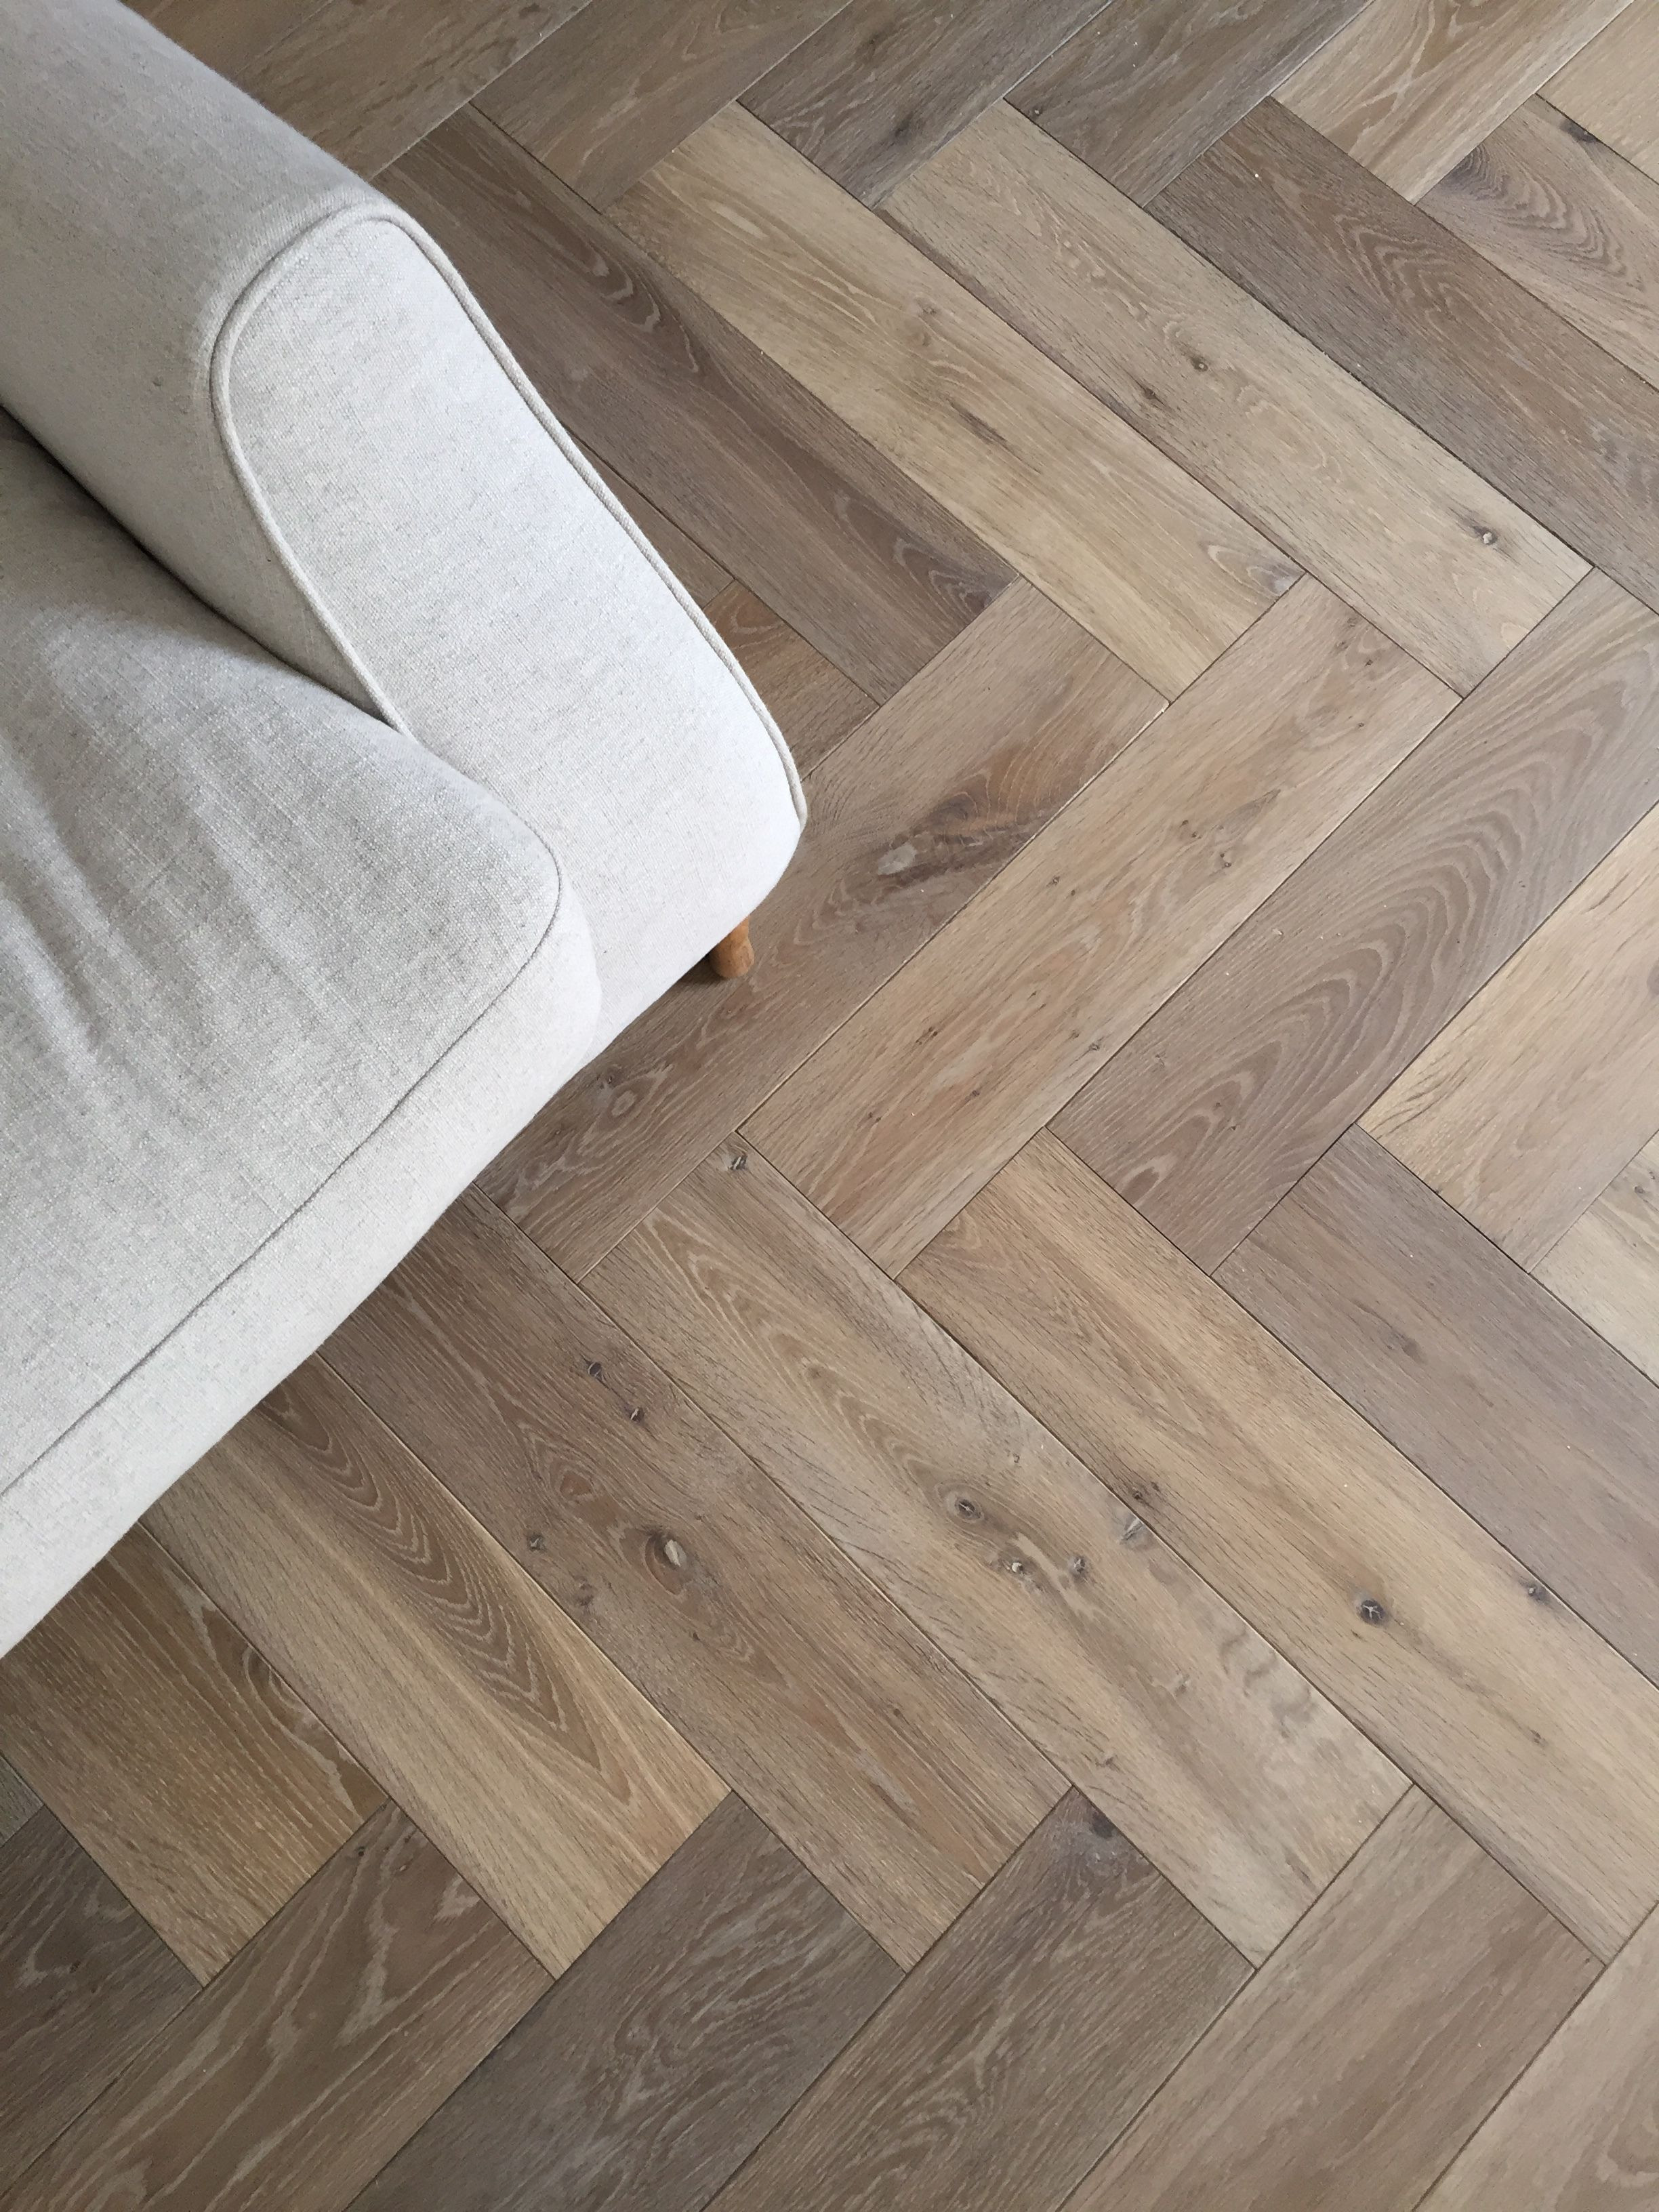 wide plank walnut hardwood flooring of wide plank hardwood flooring raglan walnut floor plan ideas inside wide plank hardwood flooring our bestseller oak dyrham es in wide plank herringbone chevron